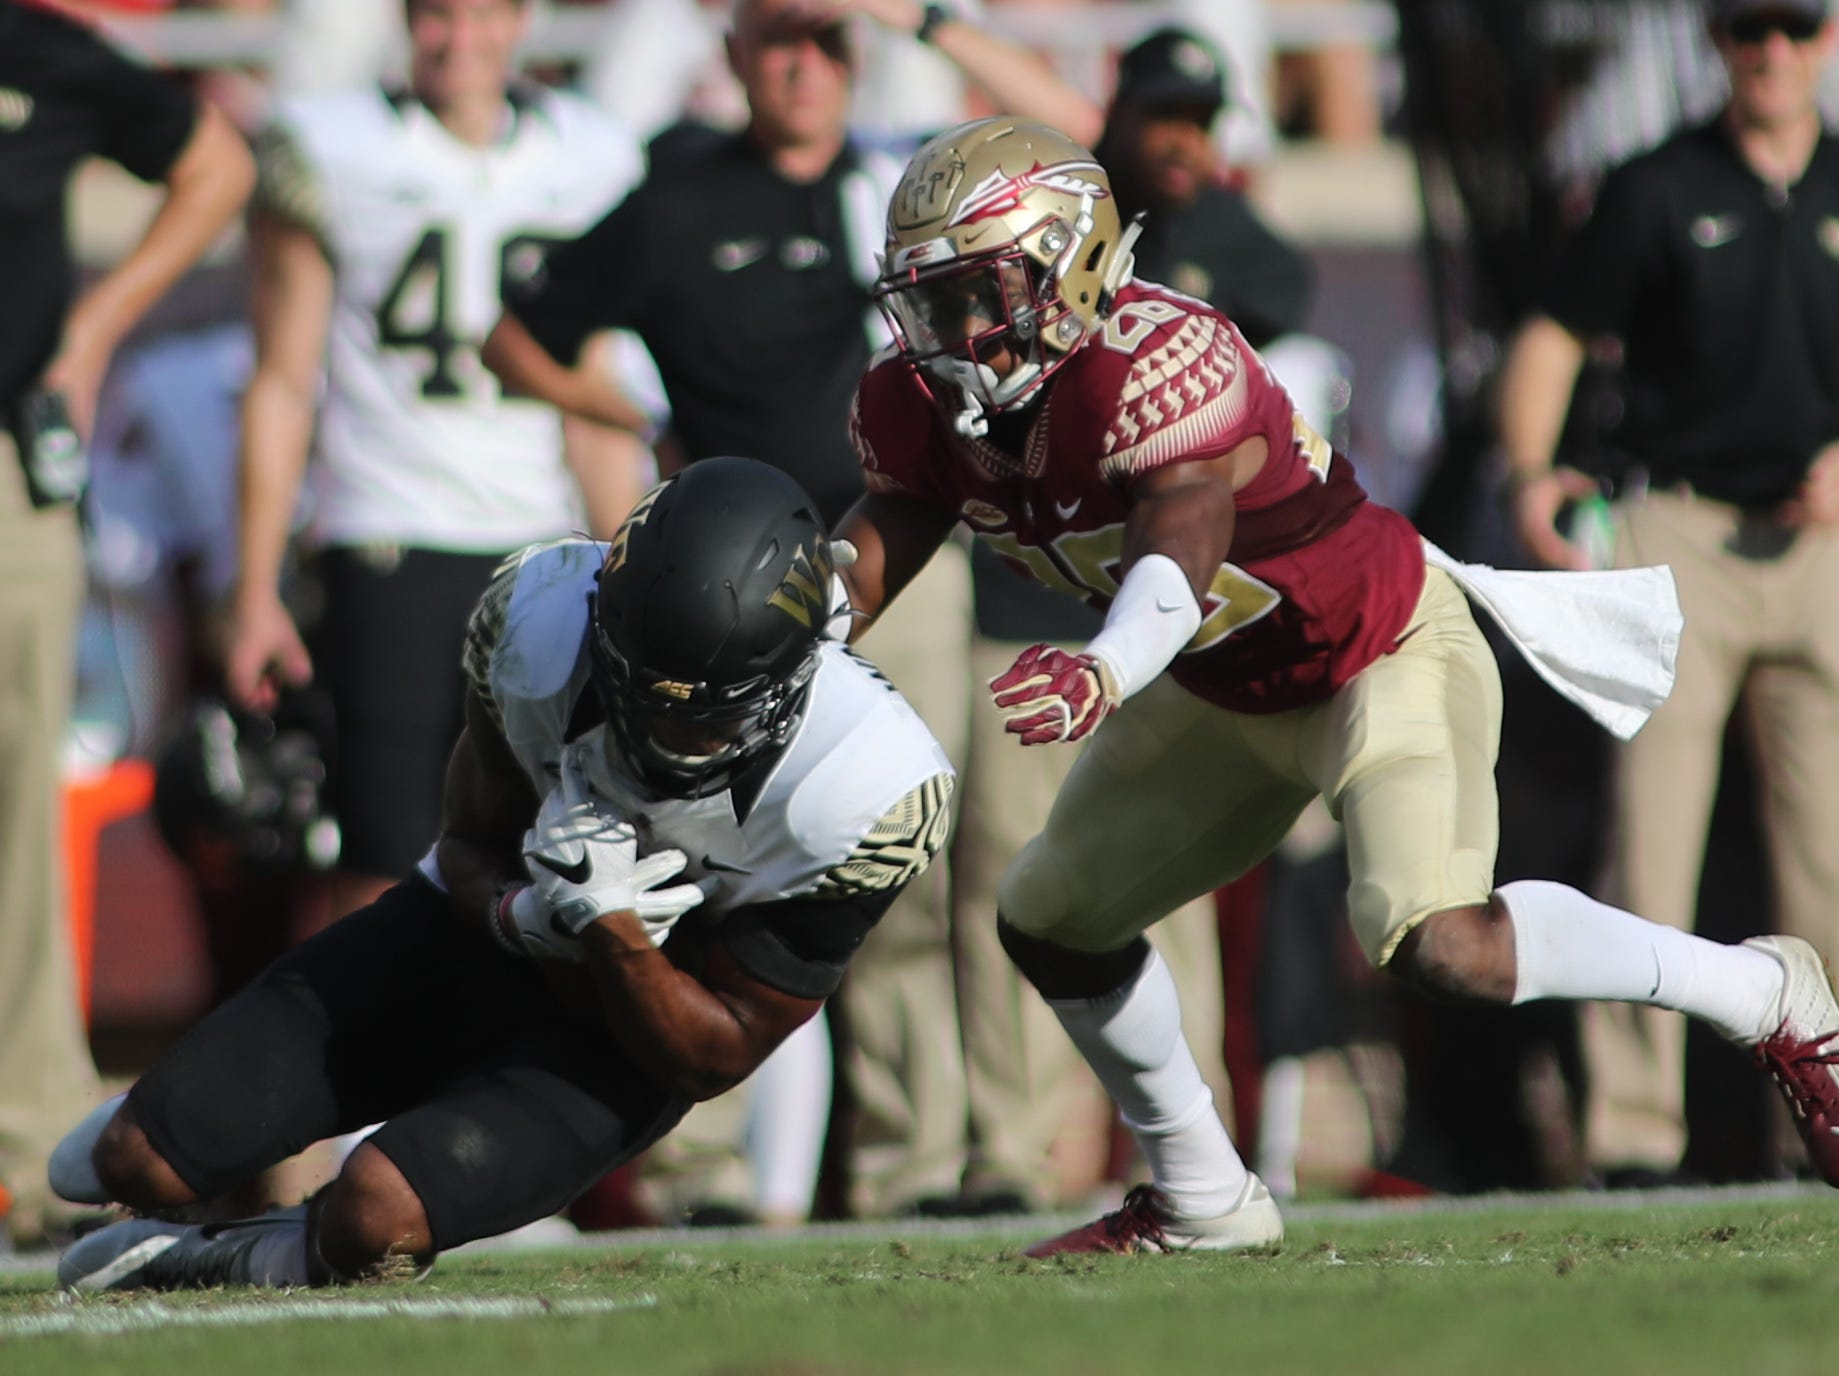 Wake Forest Demon Deacons wide receiver Scotty Washington (7) goes down after a catch followed by Florida State Seminoles defensive back Asante Samuel Jr. (26)  during FSU's homecoming game against Wake Forest at Doak S. Campbell Stadium Saturday, Oct. 20, 2018.